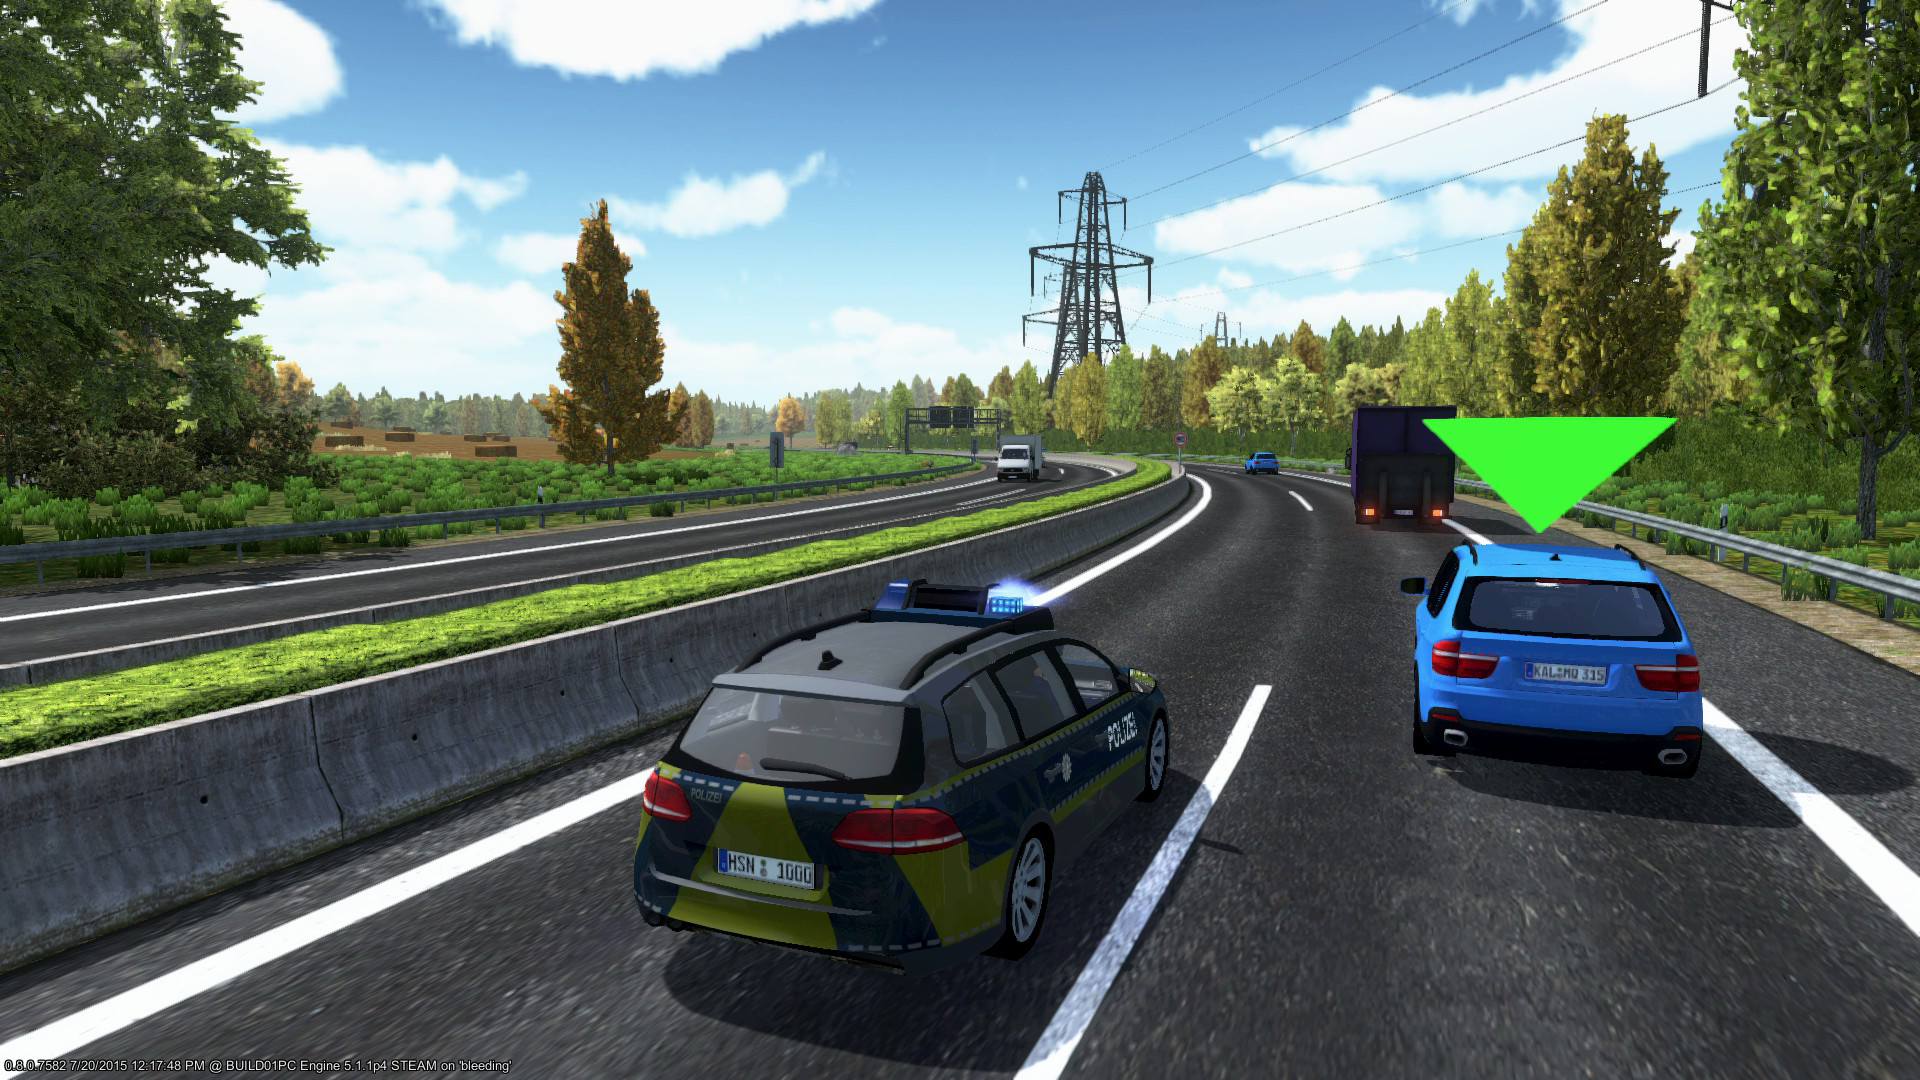 Claim Autobahn Police Simulator for free